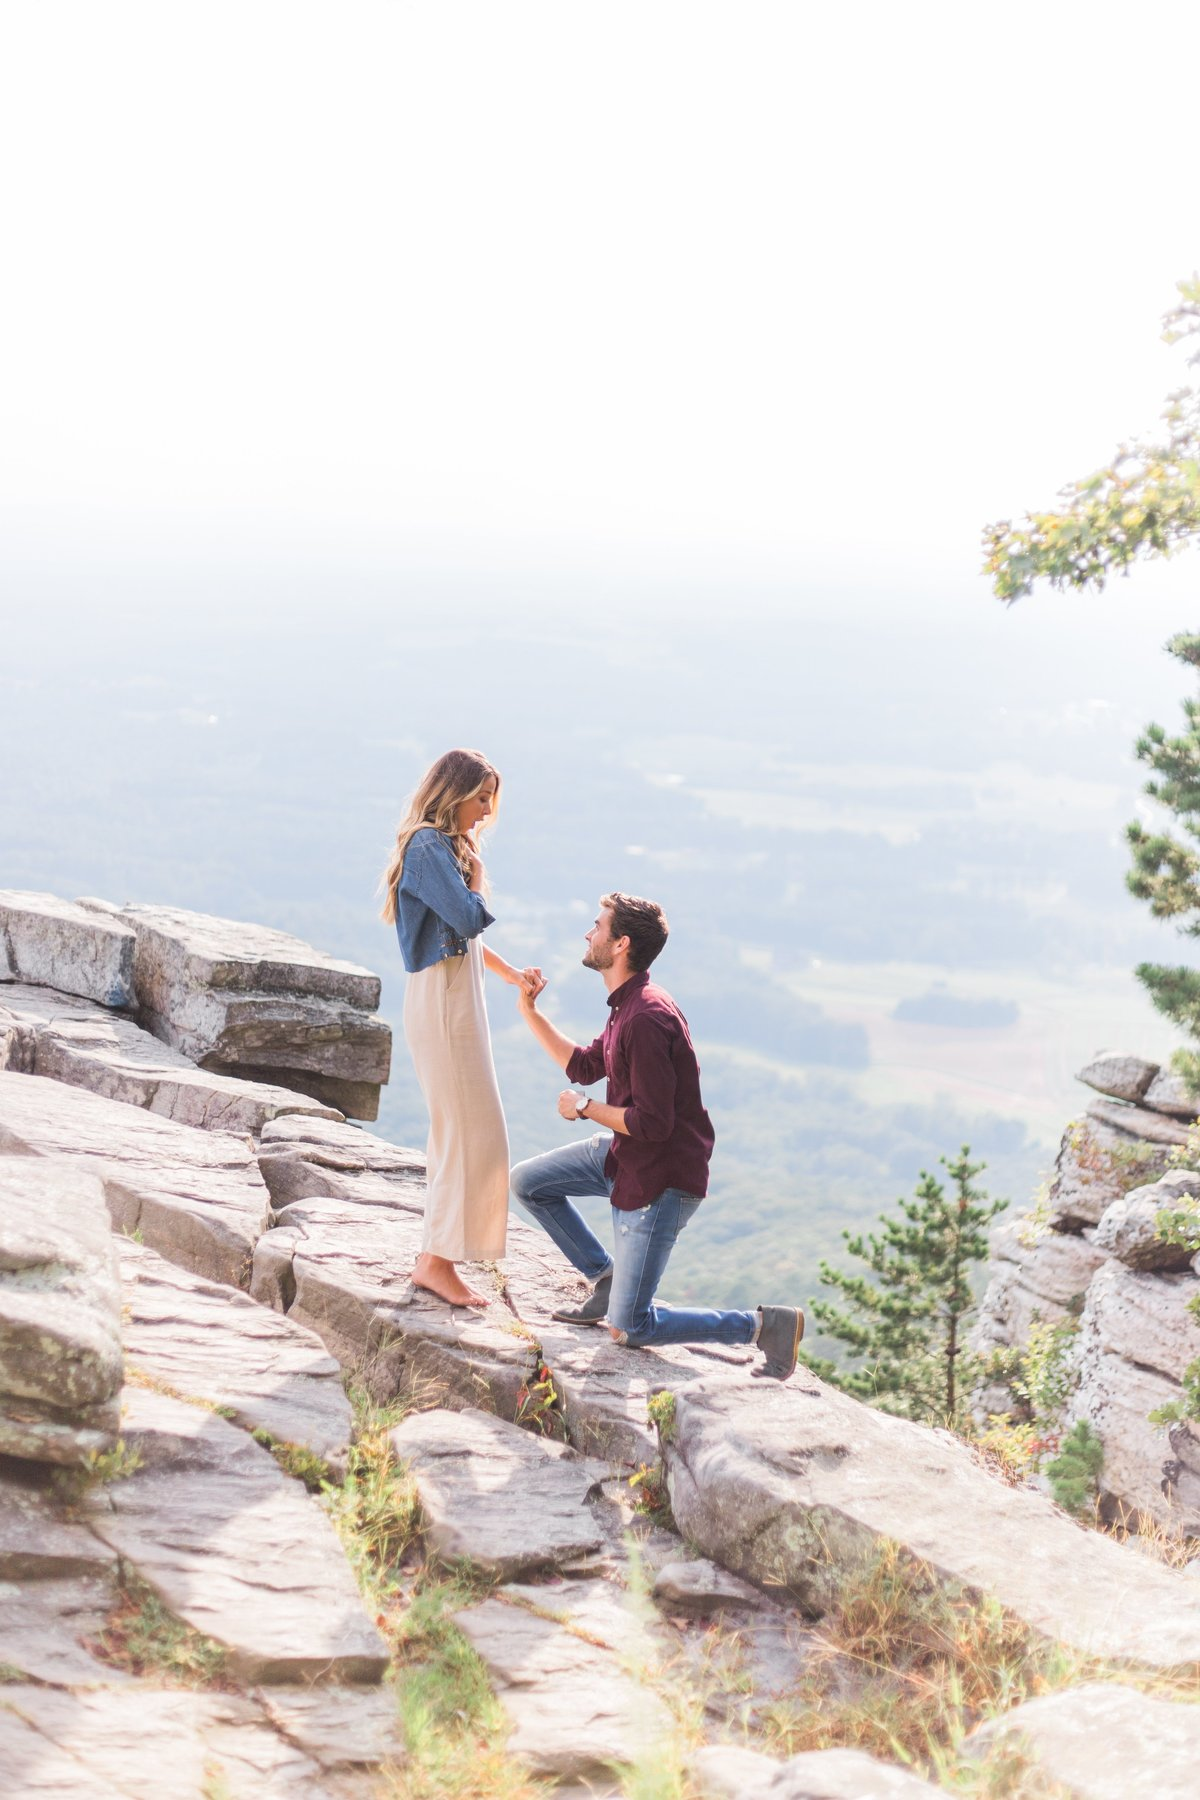 boone-engagement-session-destination-wedding-photographer-39